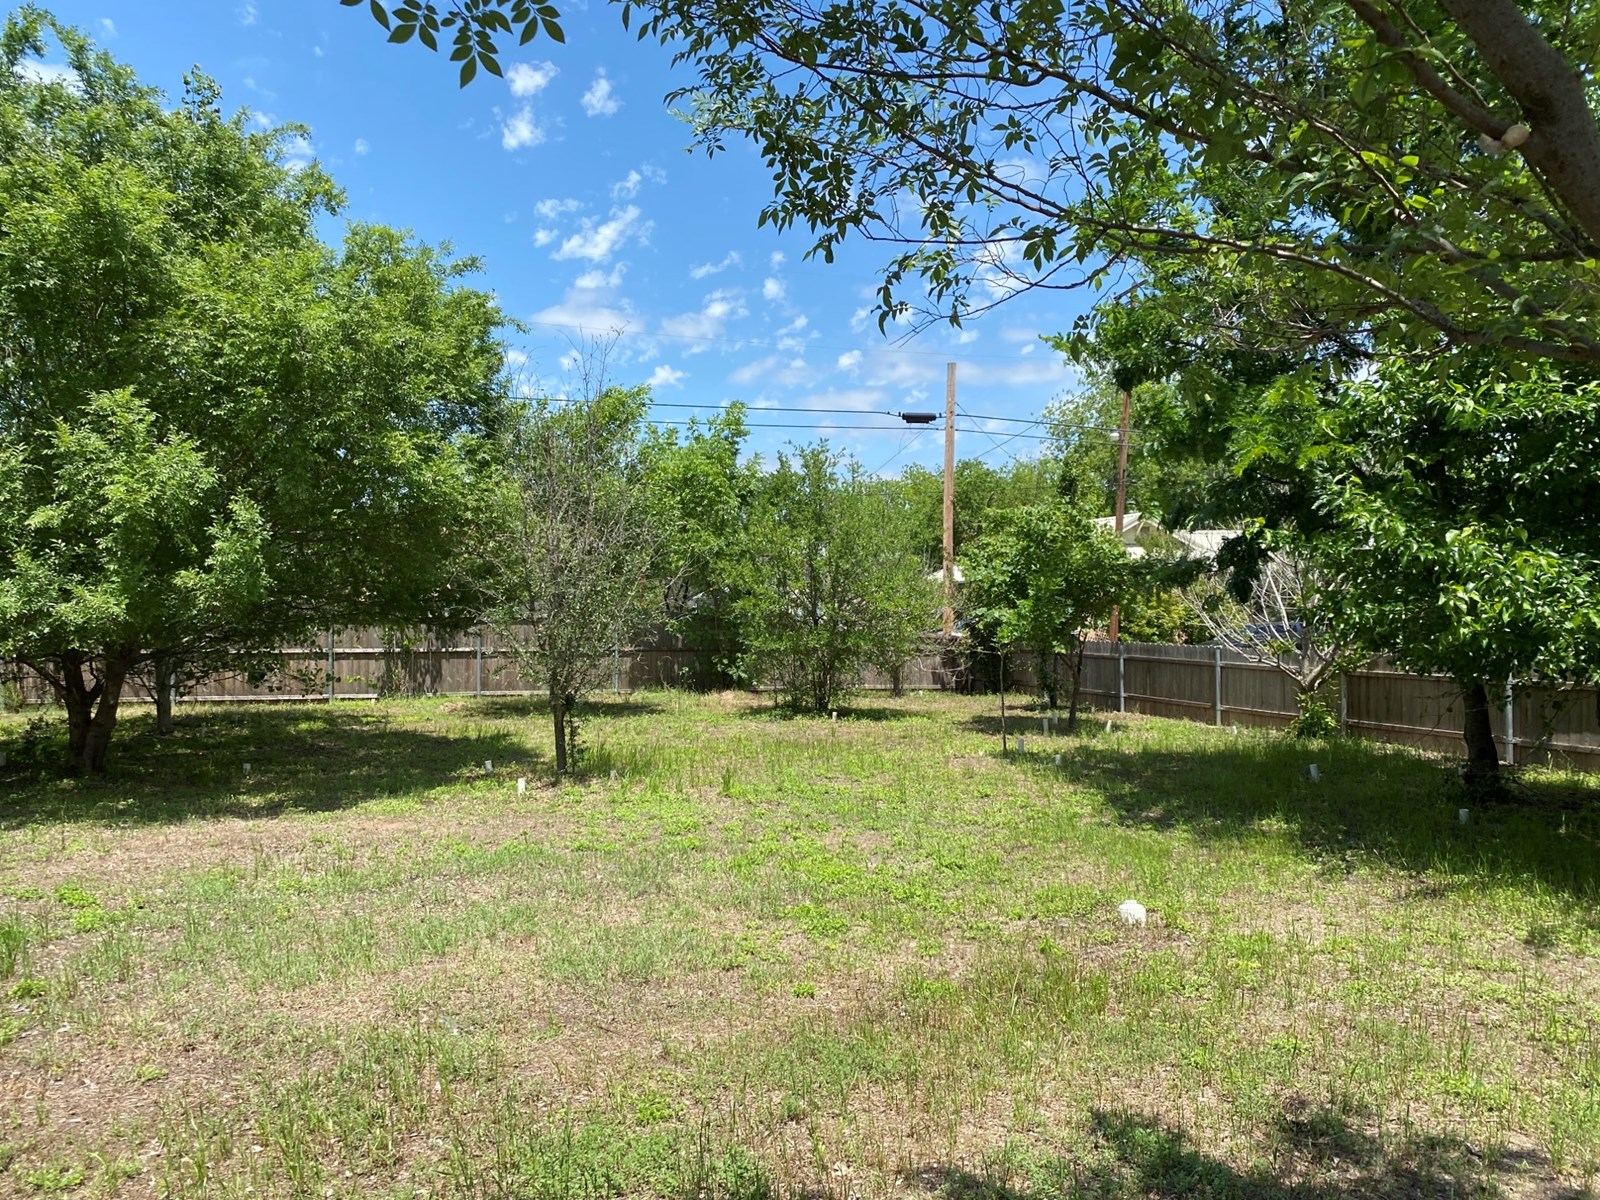 Residential Lot For Sale Gatesville TX Lots of Trees